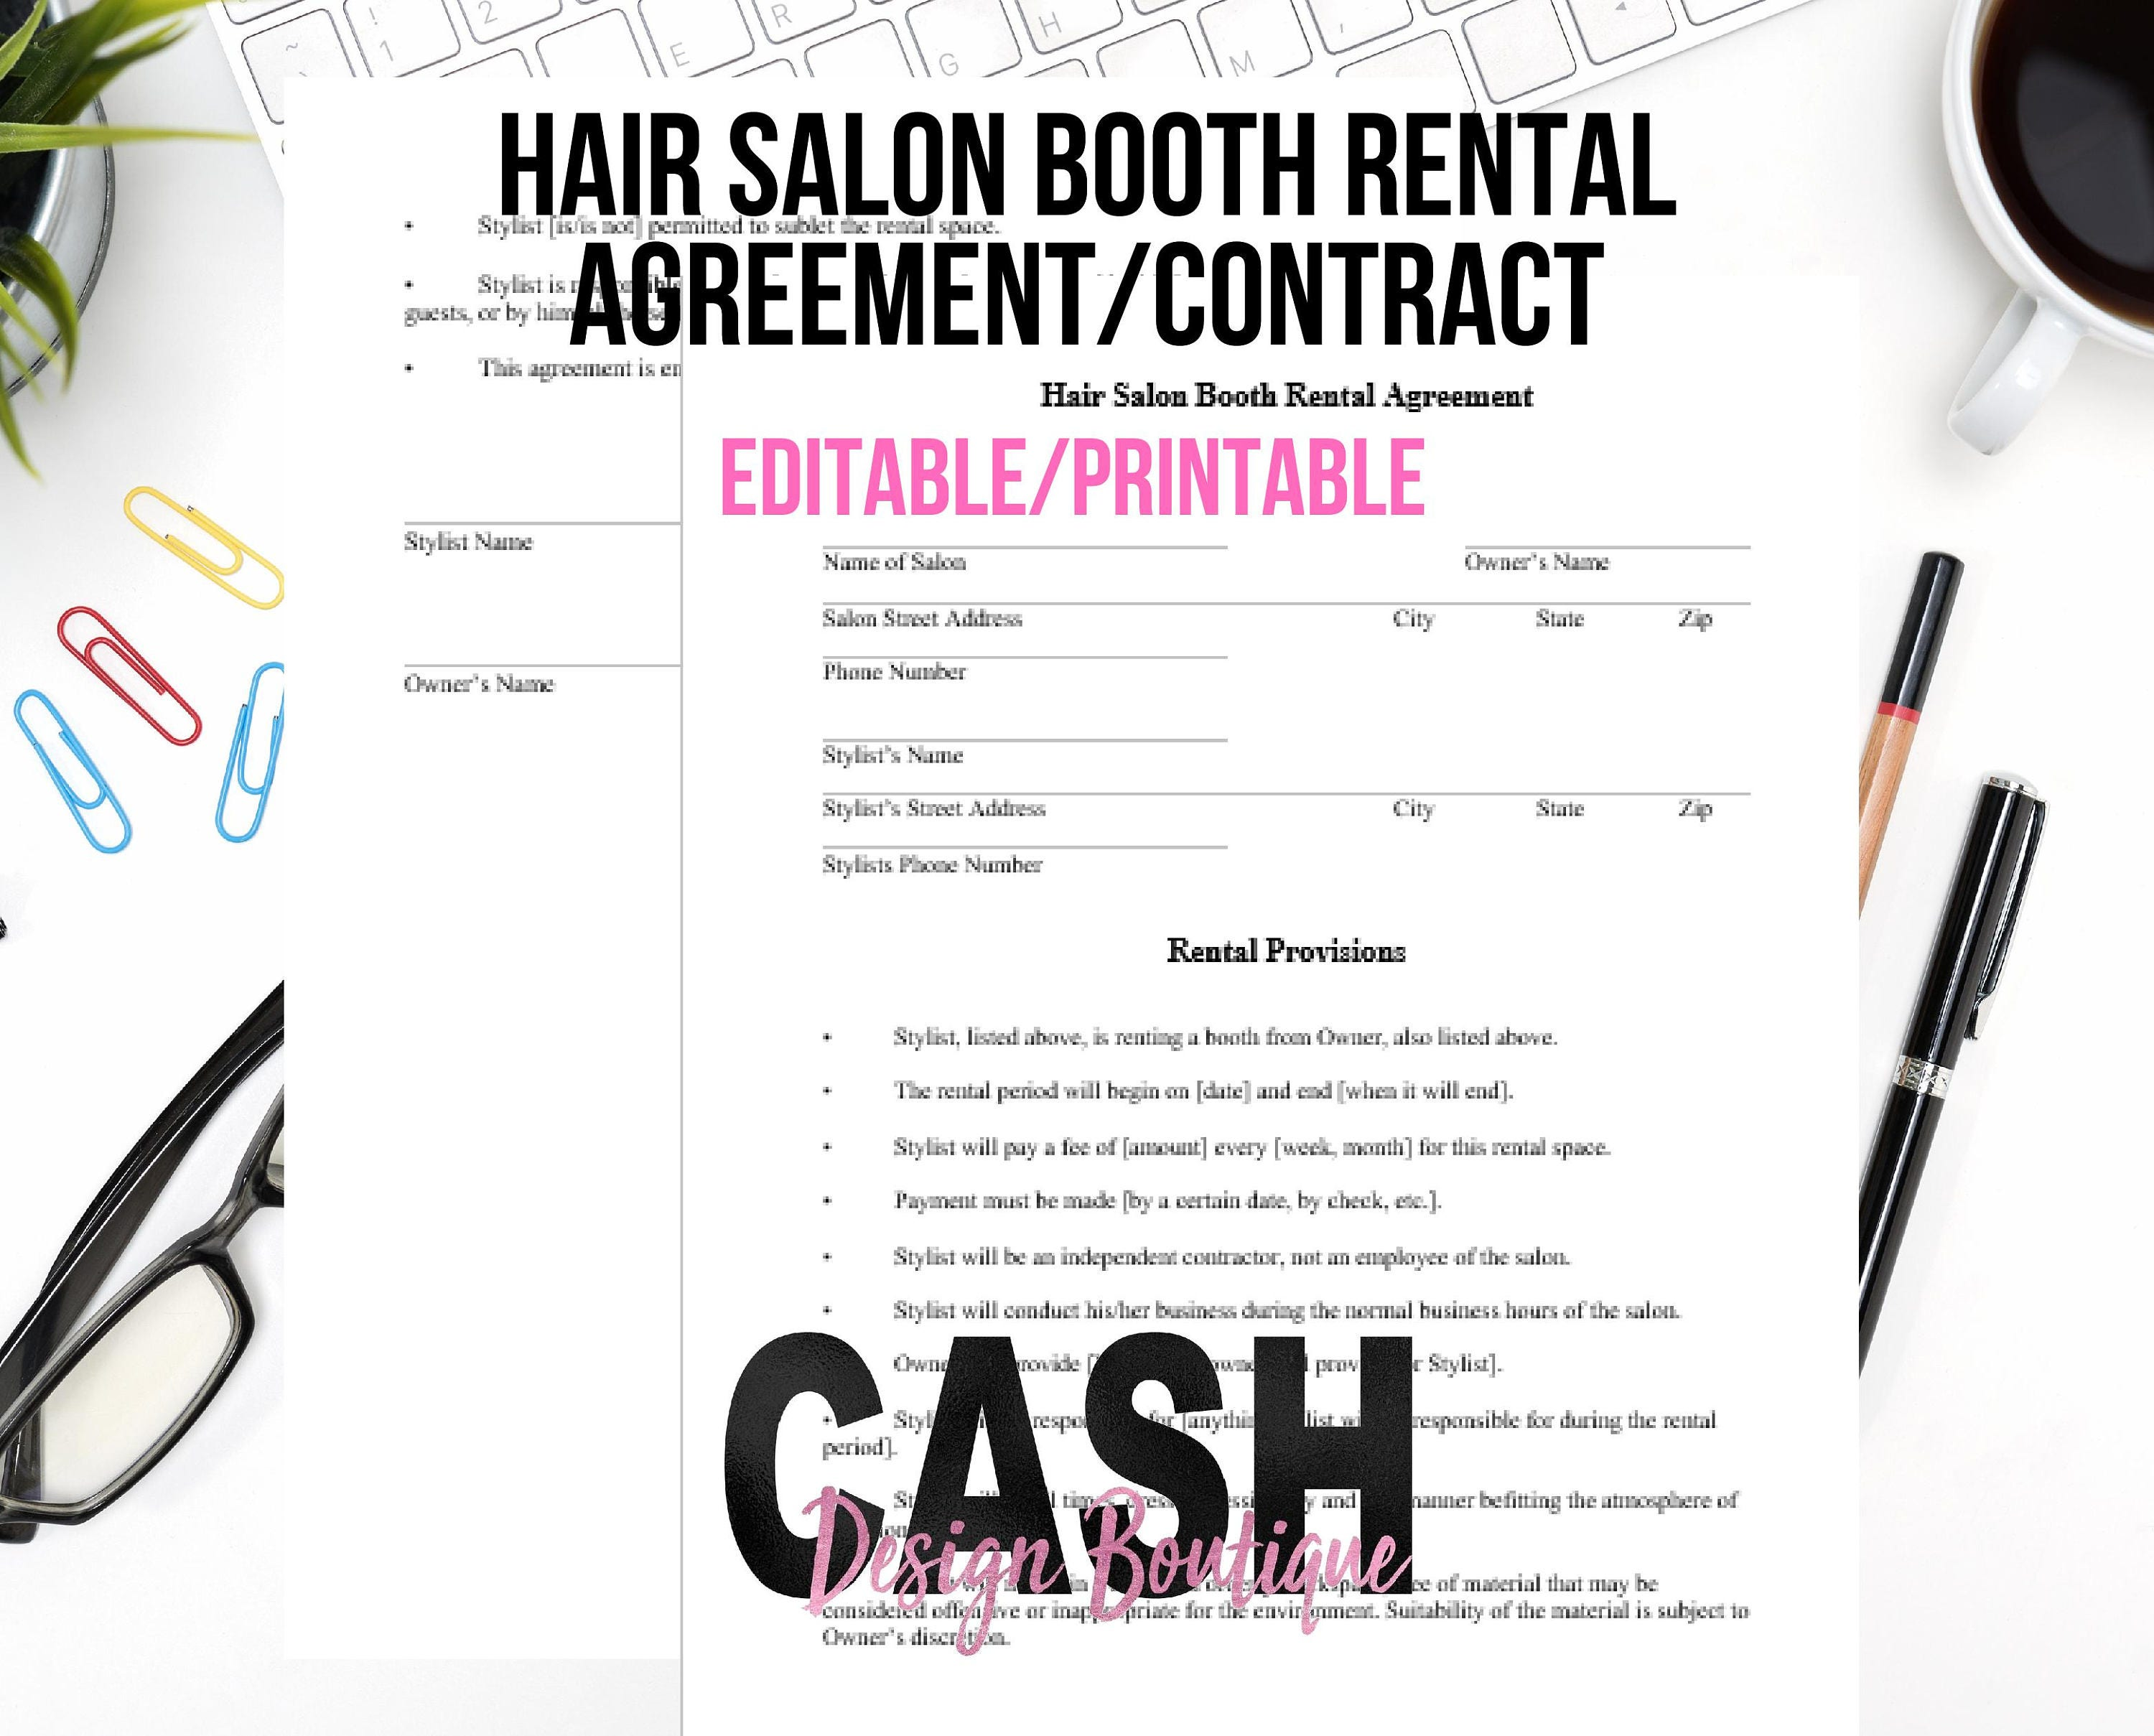 Hair Stylist Booth Rental Agreement Contract Letter Size Etsy